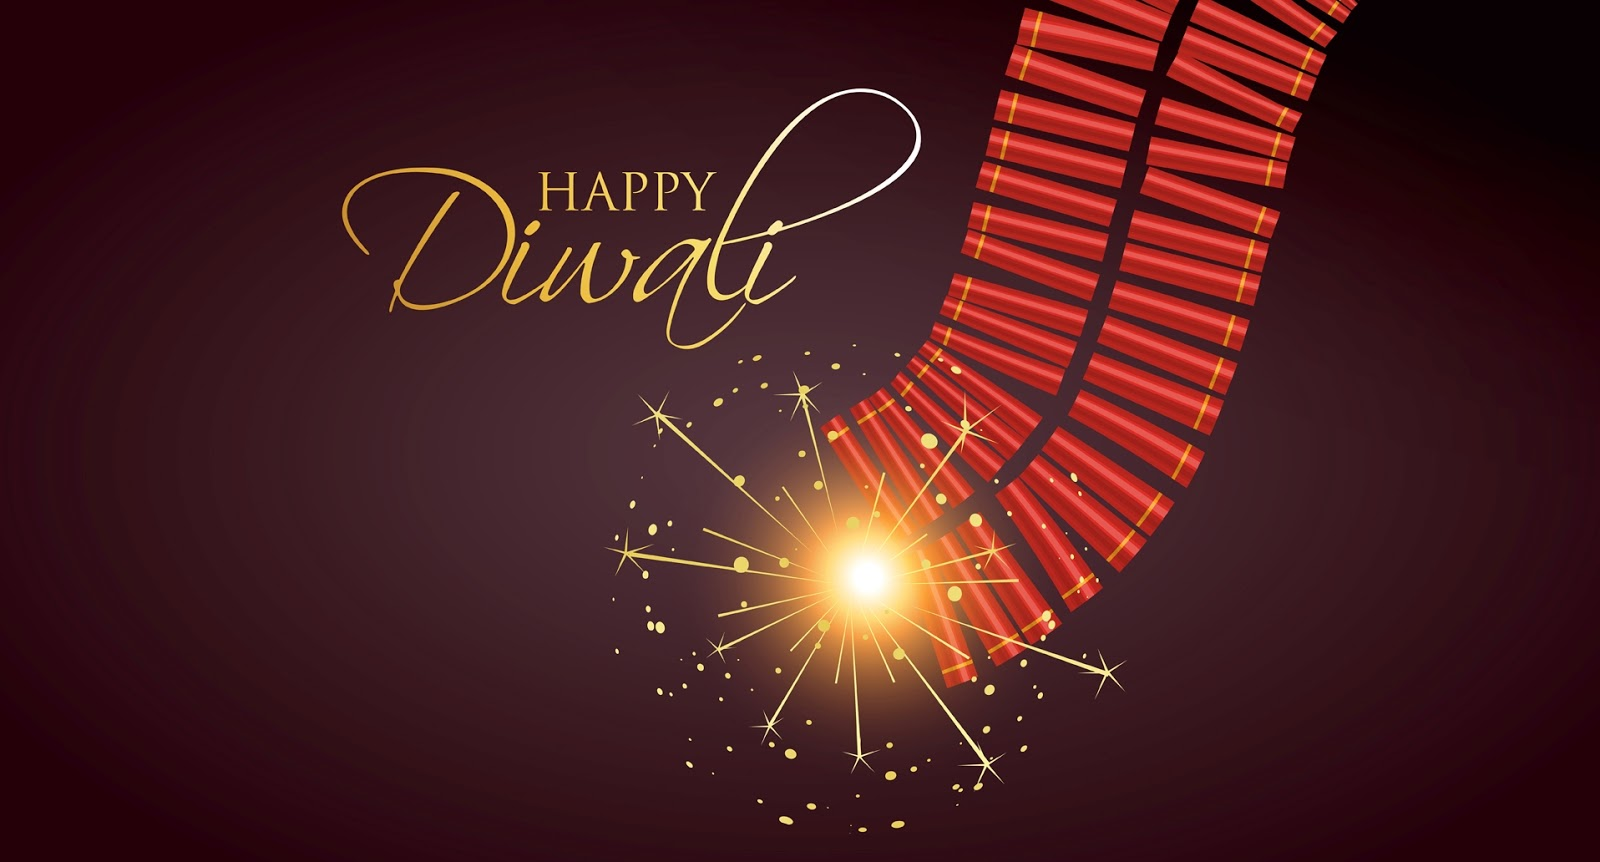 Download Best Happy Diwali Wallpapers HD